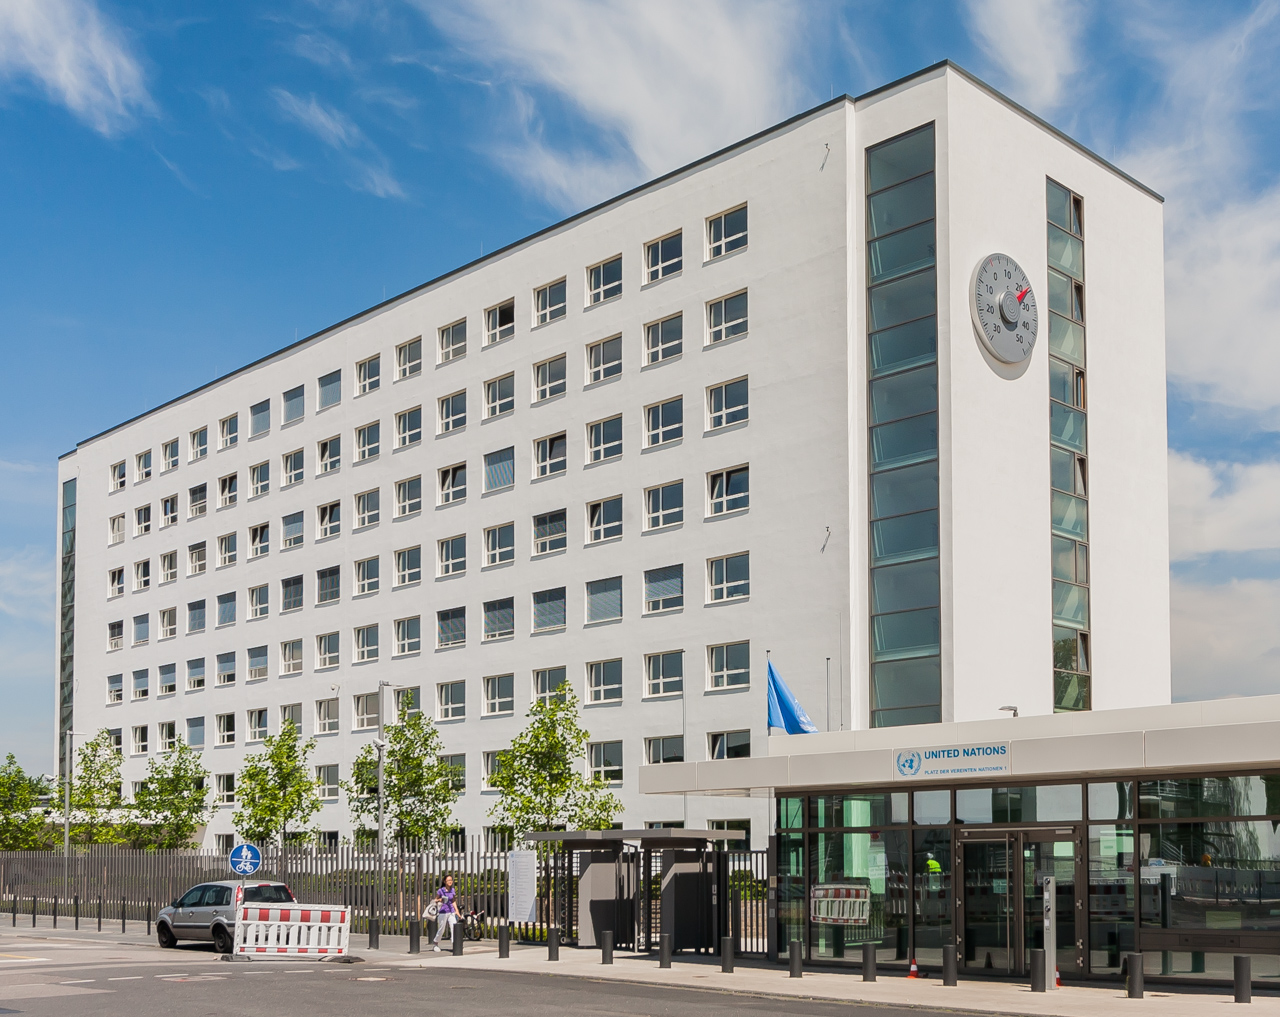 UNFCCC headquarters